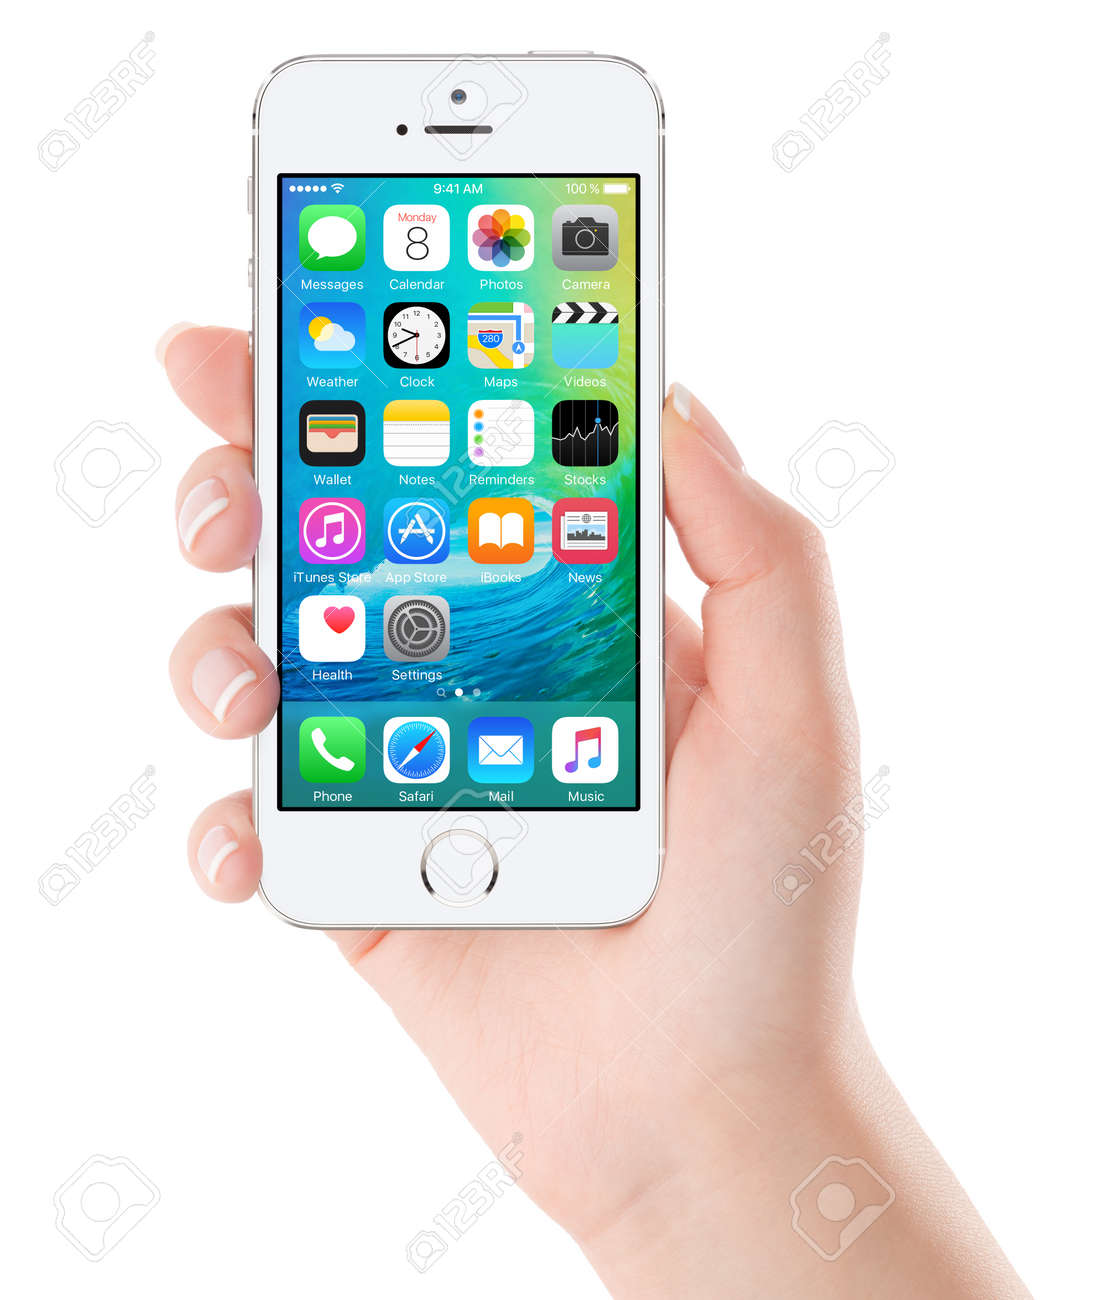 iOS 9 homescreen on the white Apple iPhone 5s display in female hand. iOS 9 is a mobile operating system created and developed by Apple Inc. Isolated on white background. Bulgaria - February 02, 2015. - 43260262